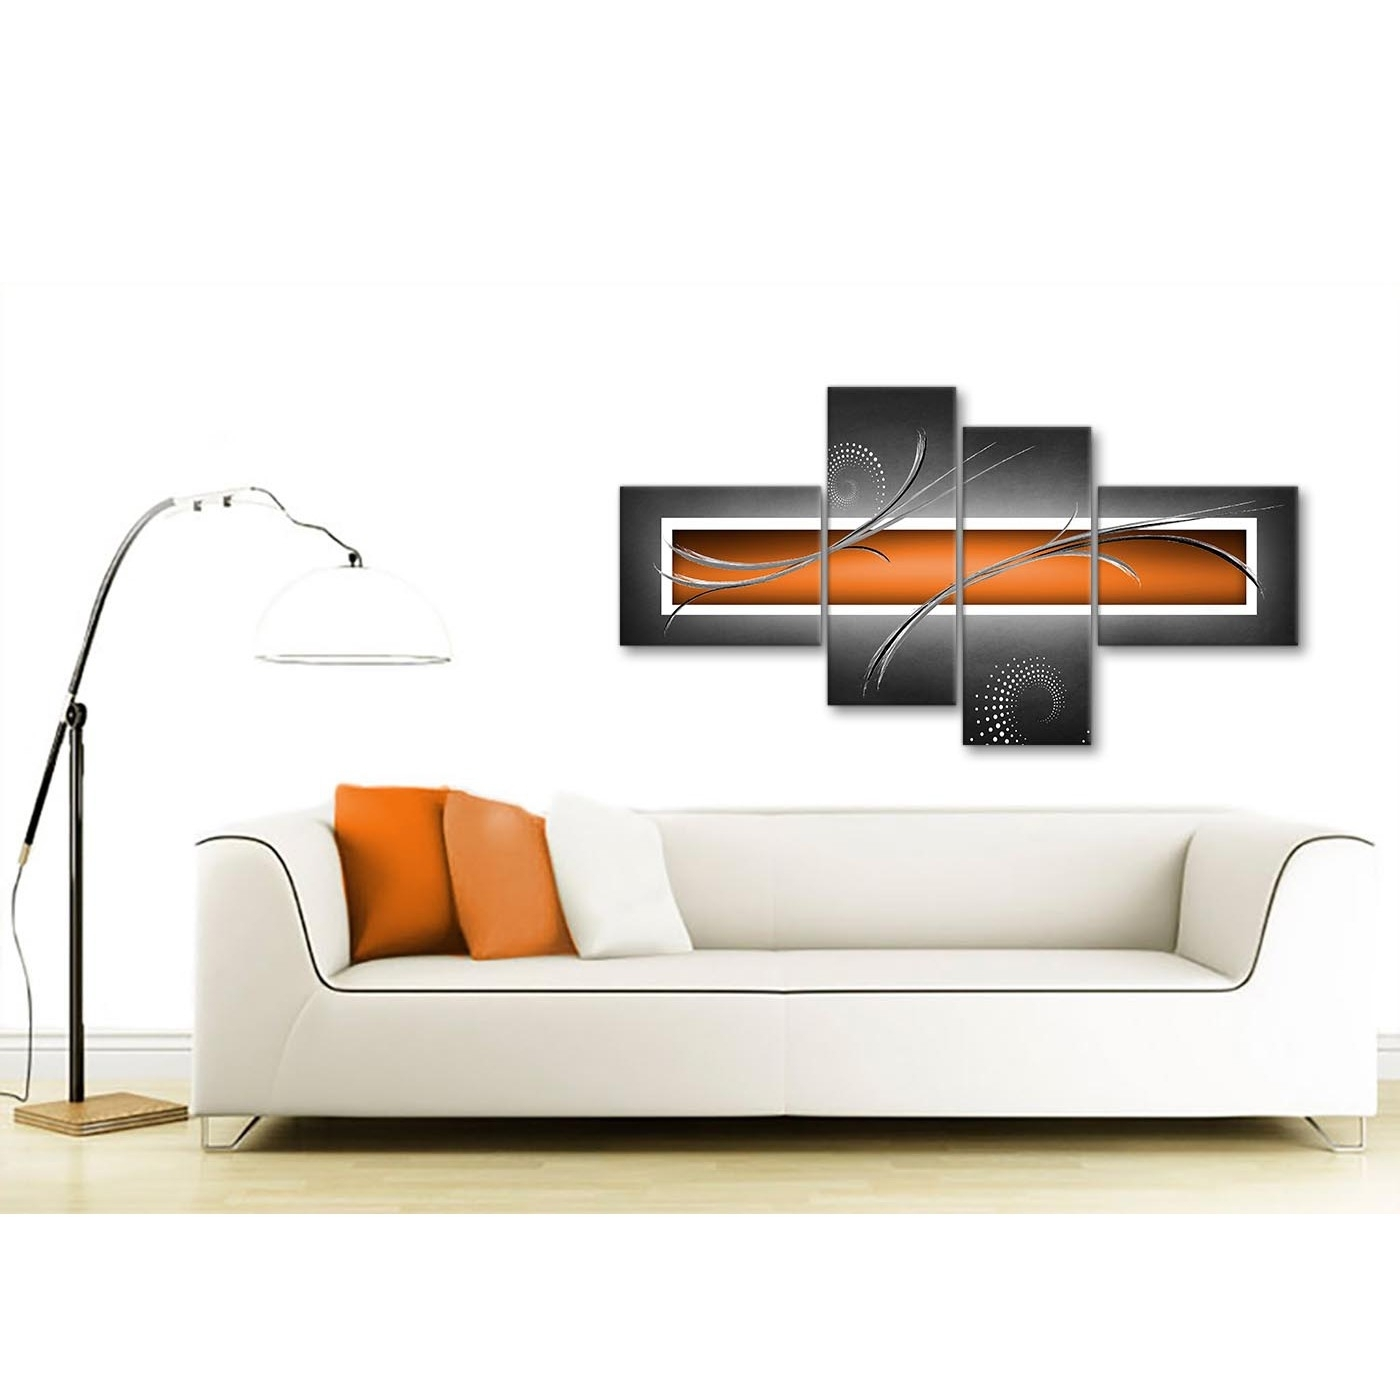 Large Orange Grey White Modern Abstract Canvas Wall Art – Split 4 With Regard To Newest Modern Large Canvas Wall Art (View 17 of 20)